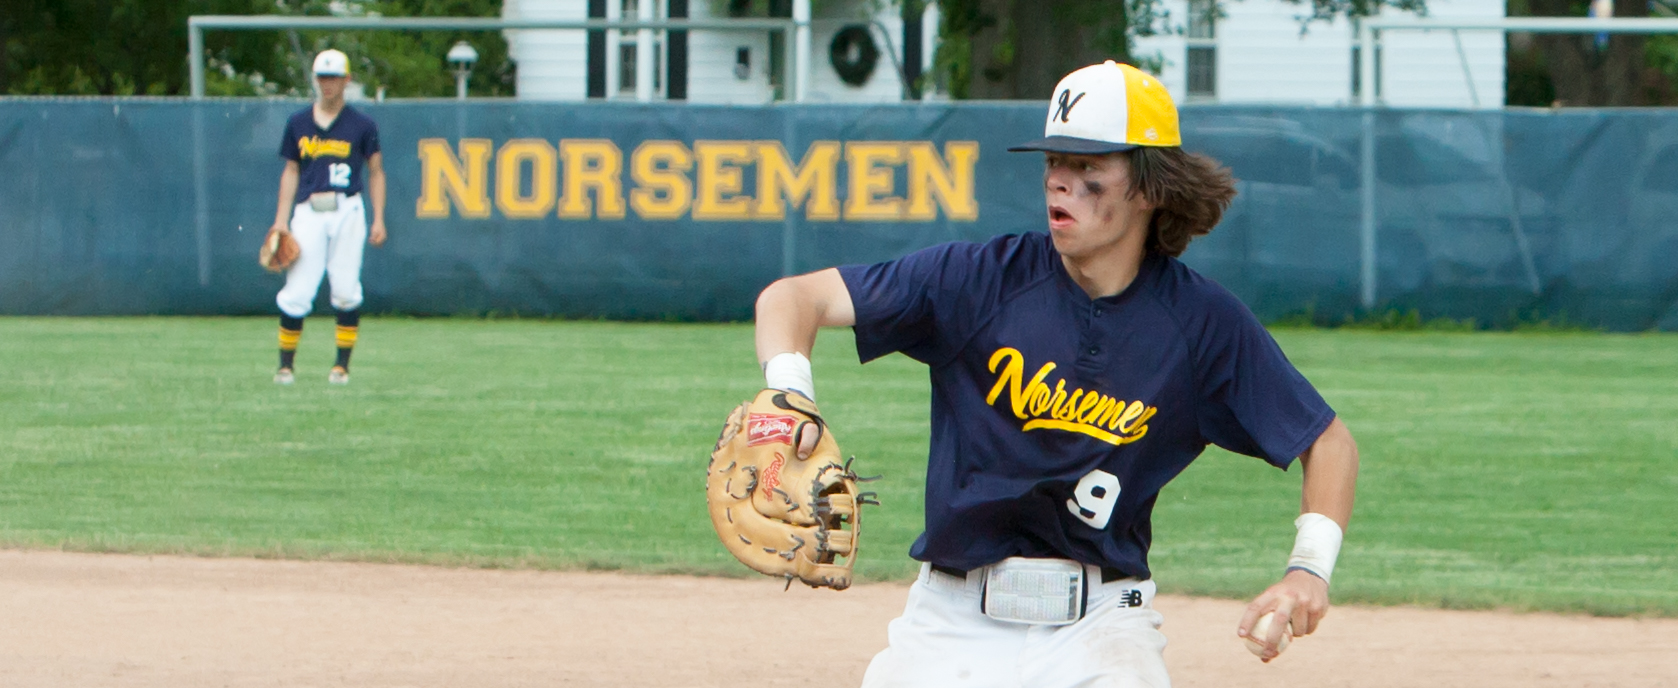 Resilient North Muskegon baseball team rallies from three-run deficit, beats Ravenna 13-8 in Division 3 regionals